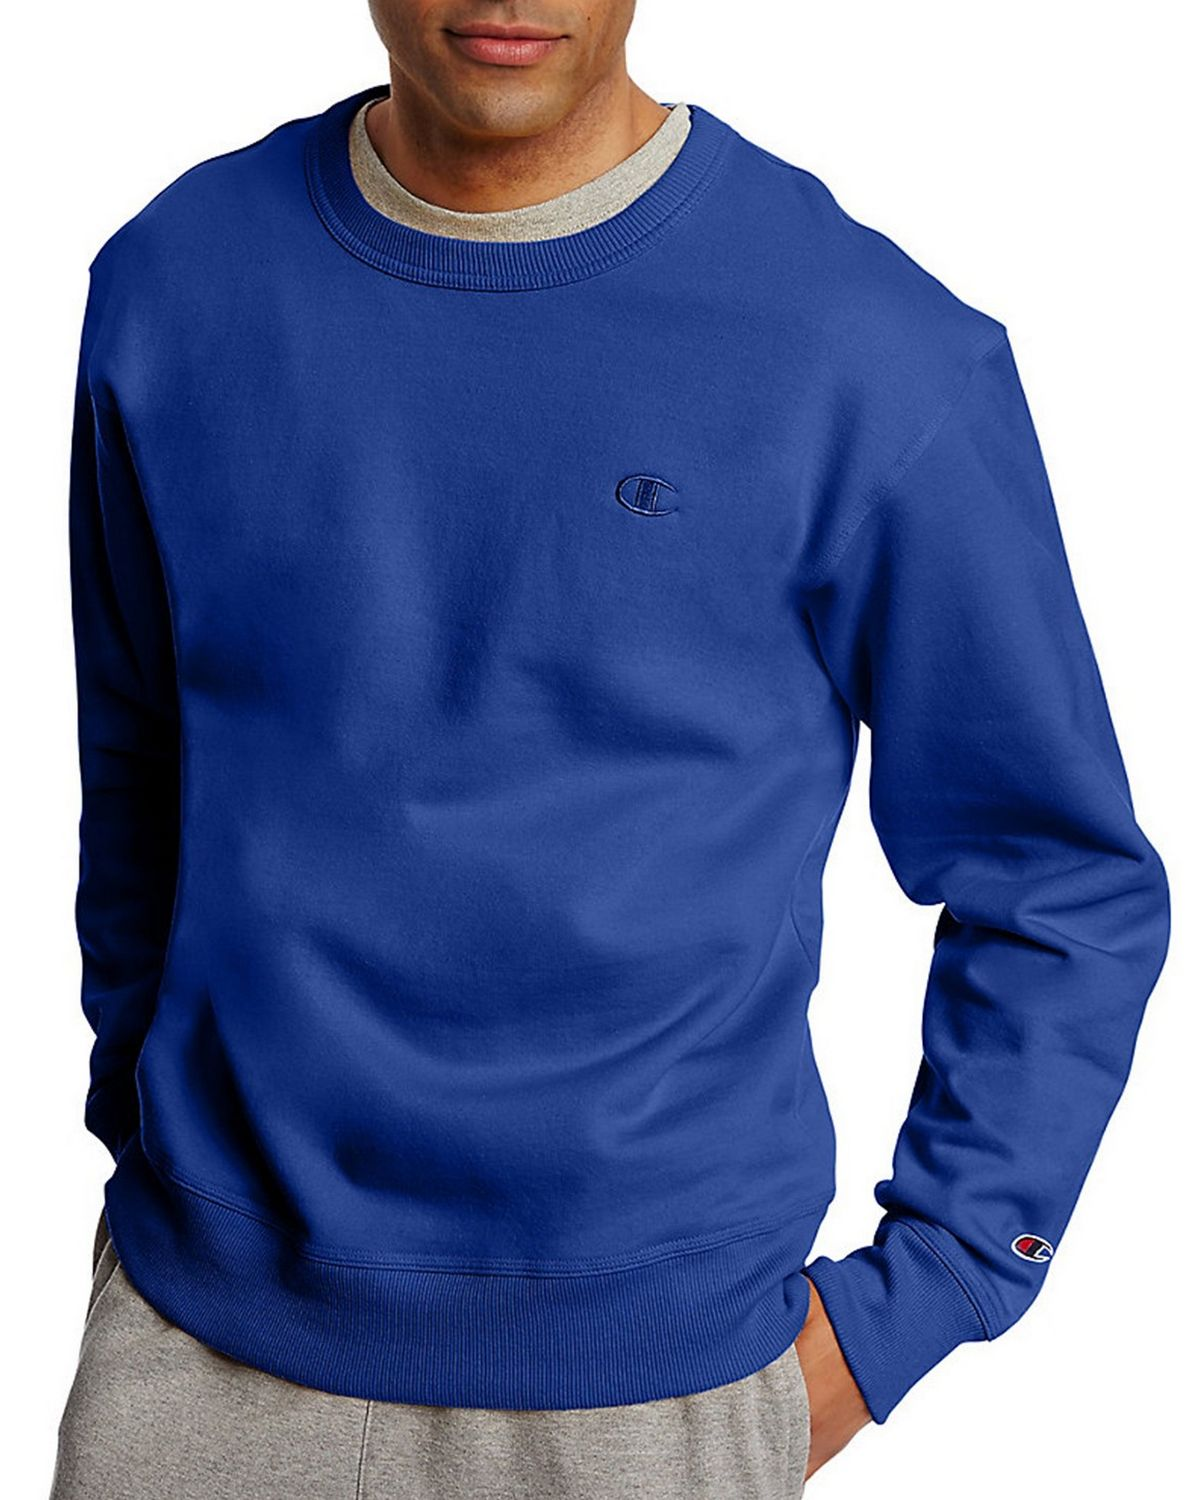 Champion S0888 Mens Fleece Pullover Crew - Surf The Web - XL S0888